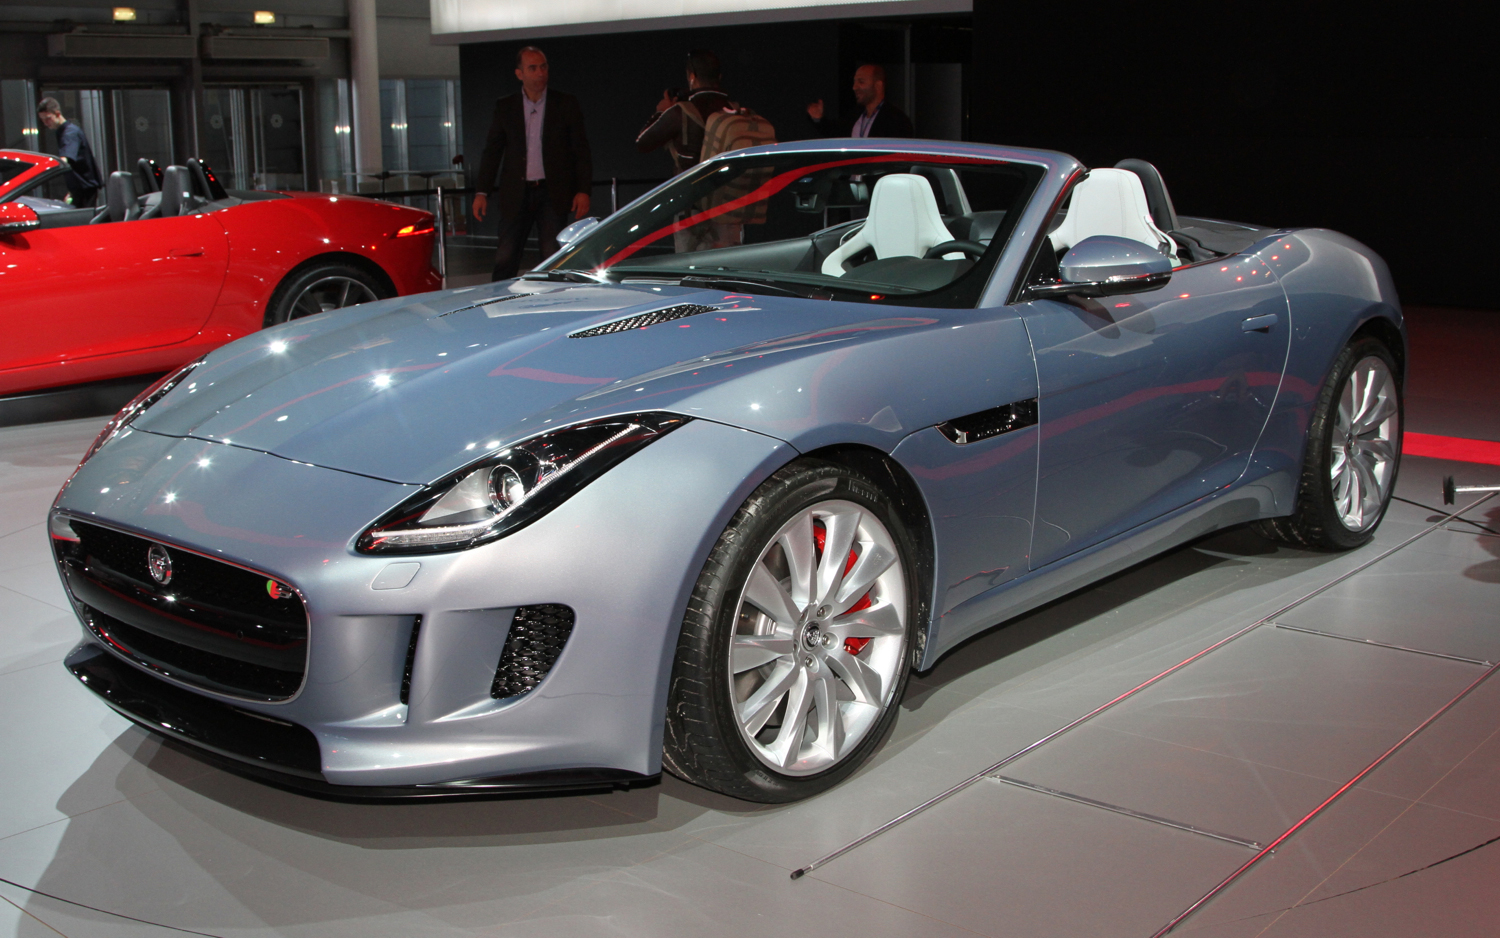 2014 Jaguar F Type #10 Jaguar F Type #10